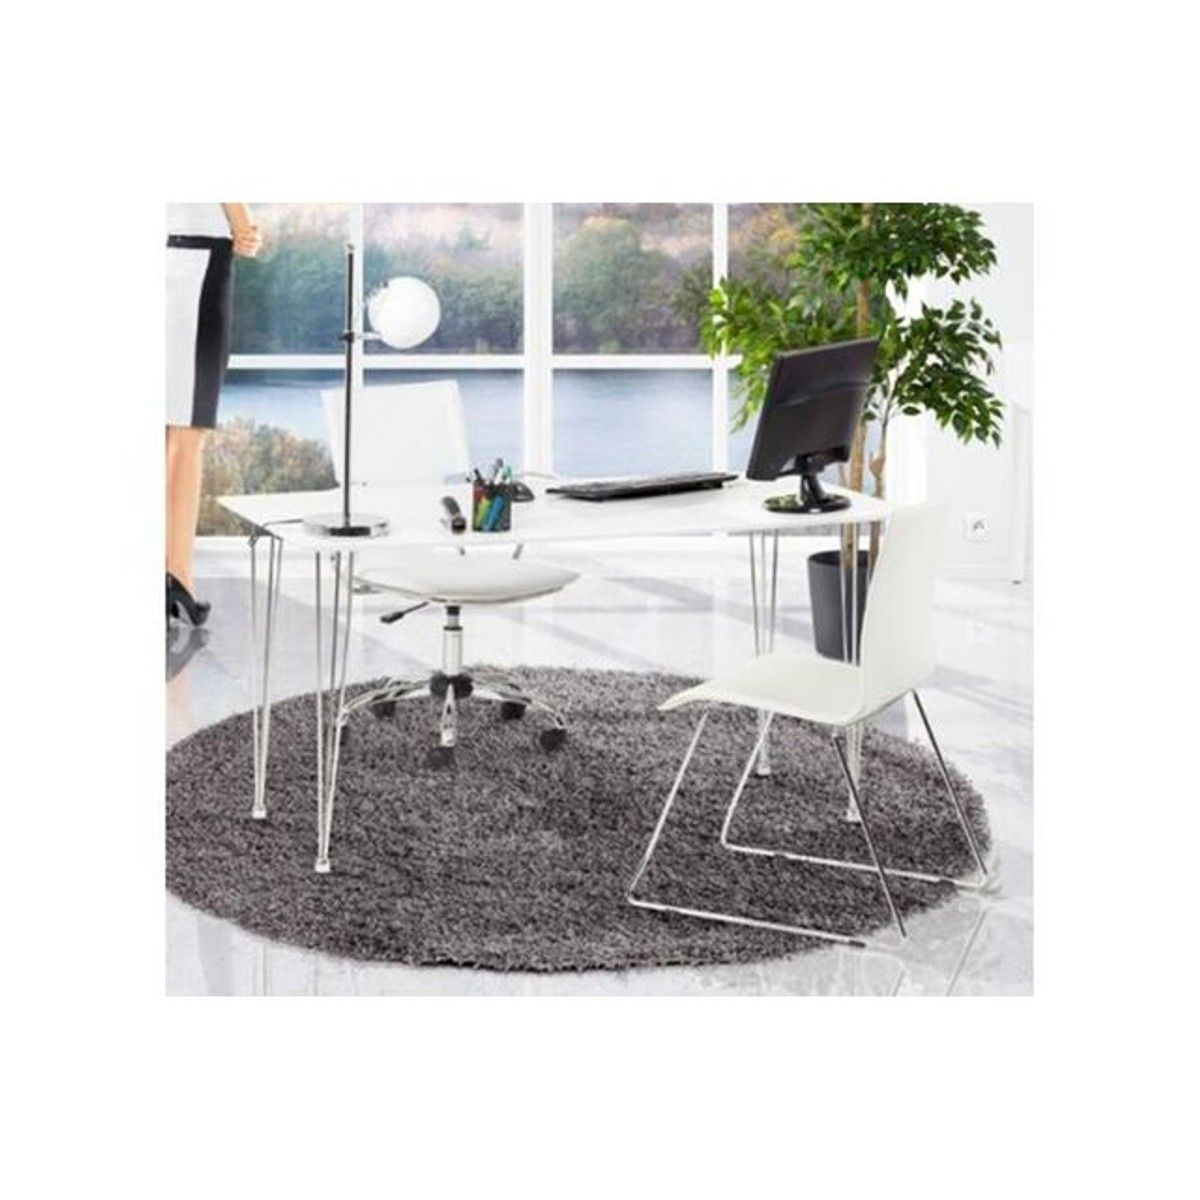 Tapis Rond 160 Tapis Rond 160 Gris Chance Products Chair Furniture Et Home Decor